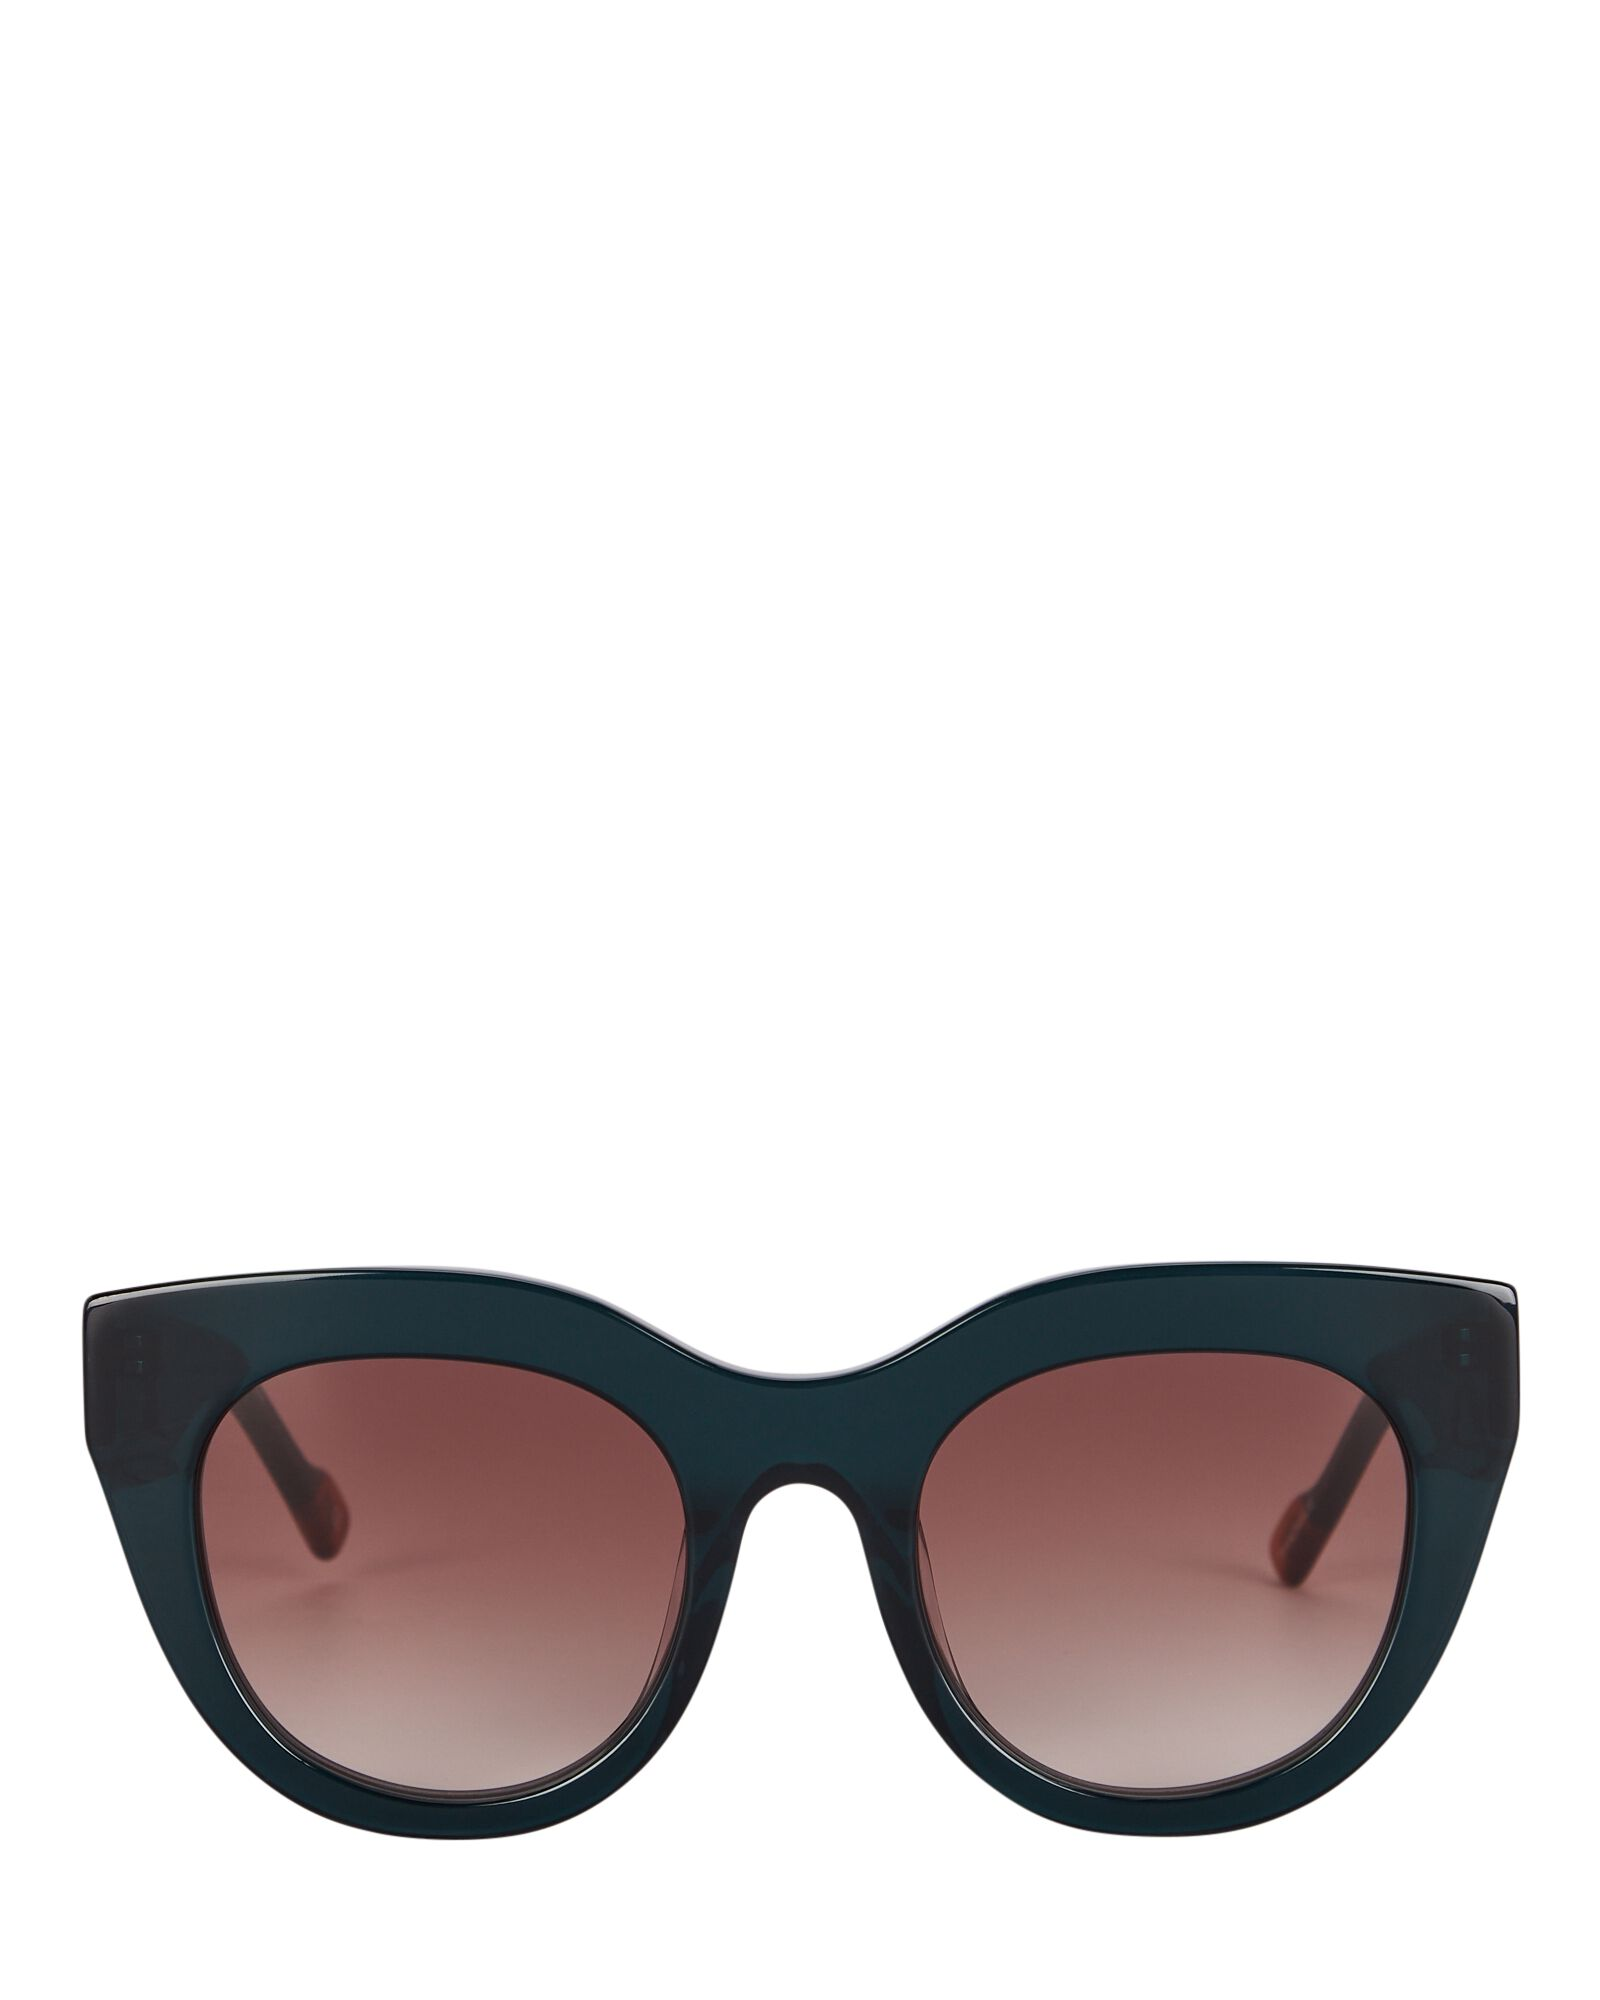 Airy Canary Cat Eye Sunglasses, GREEN/BROWN, hi-res